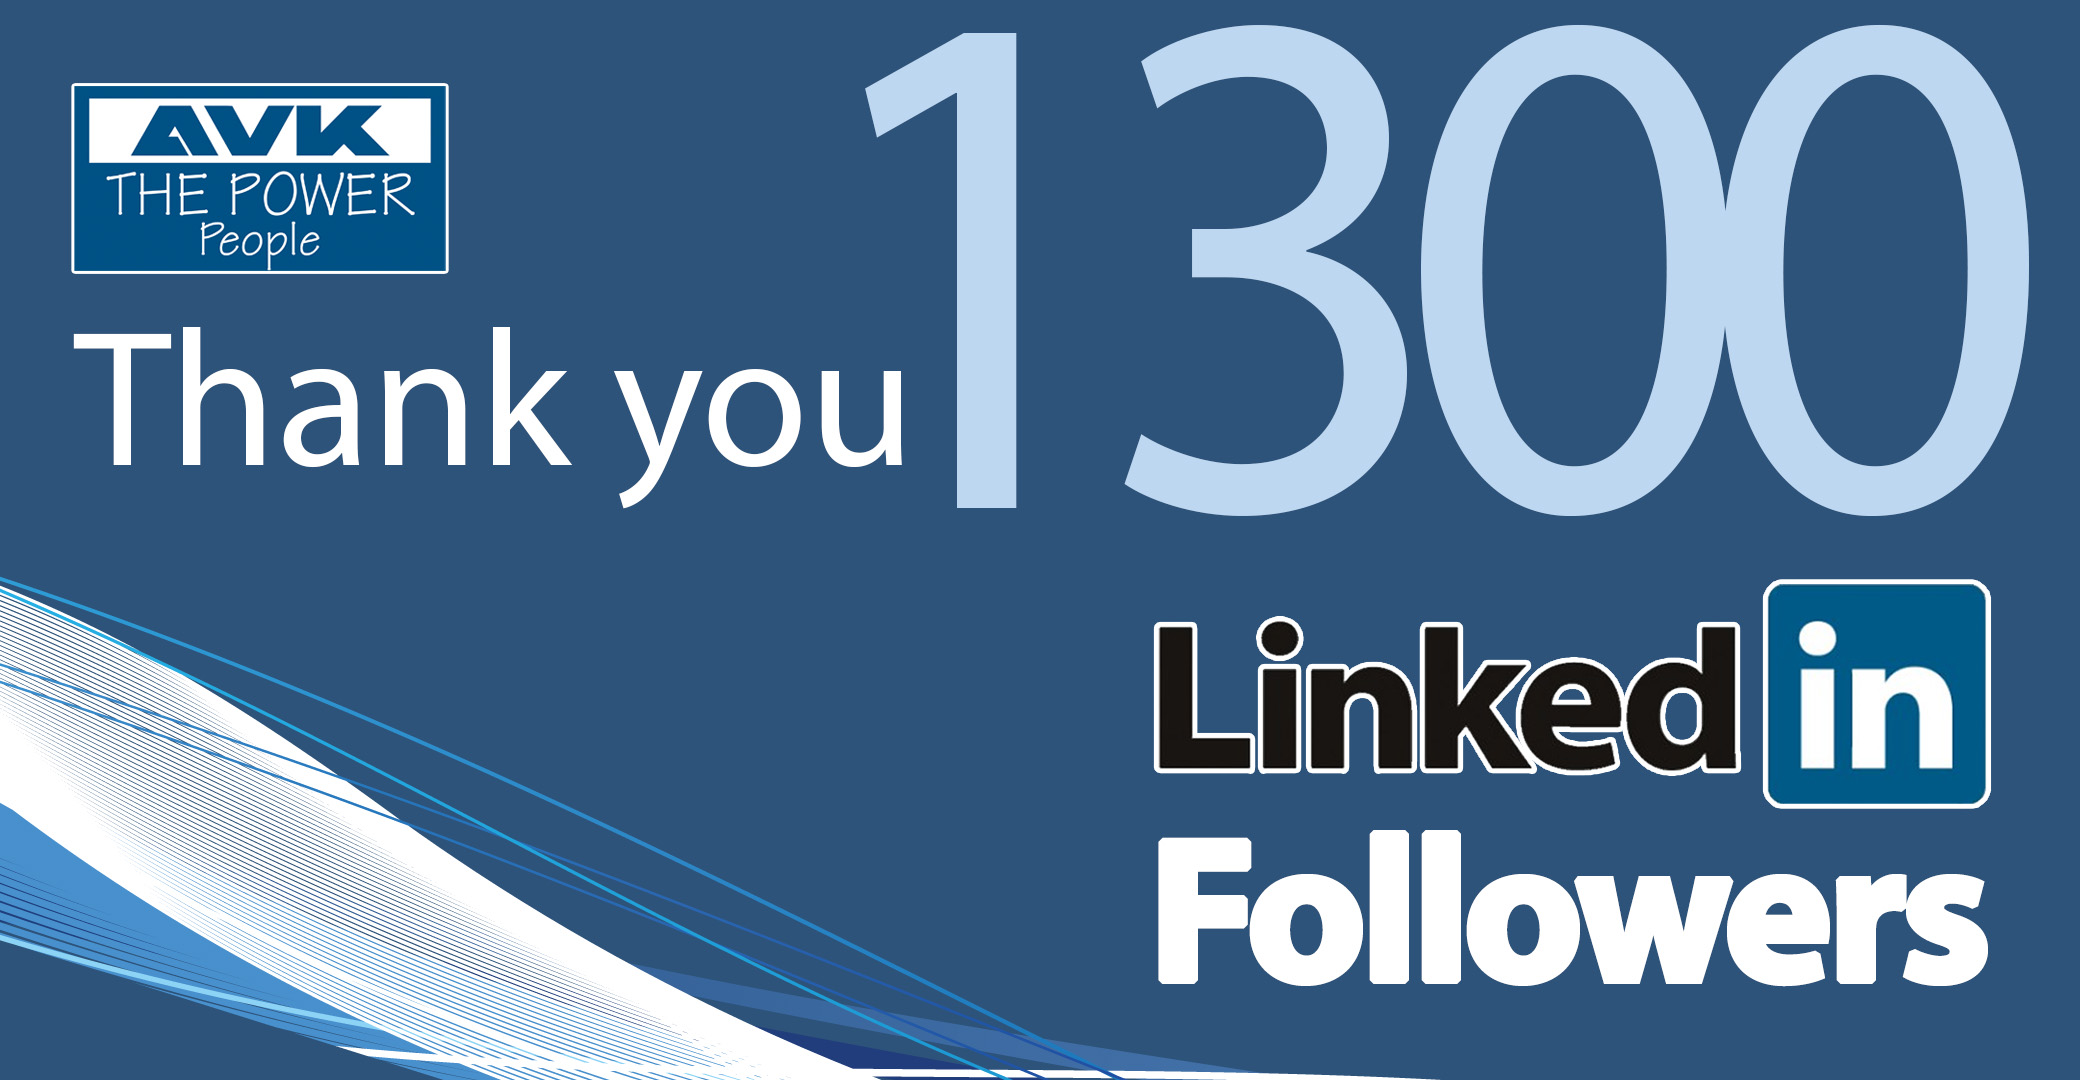 1,300 LinkedIn Followers milestone reached